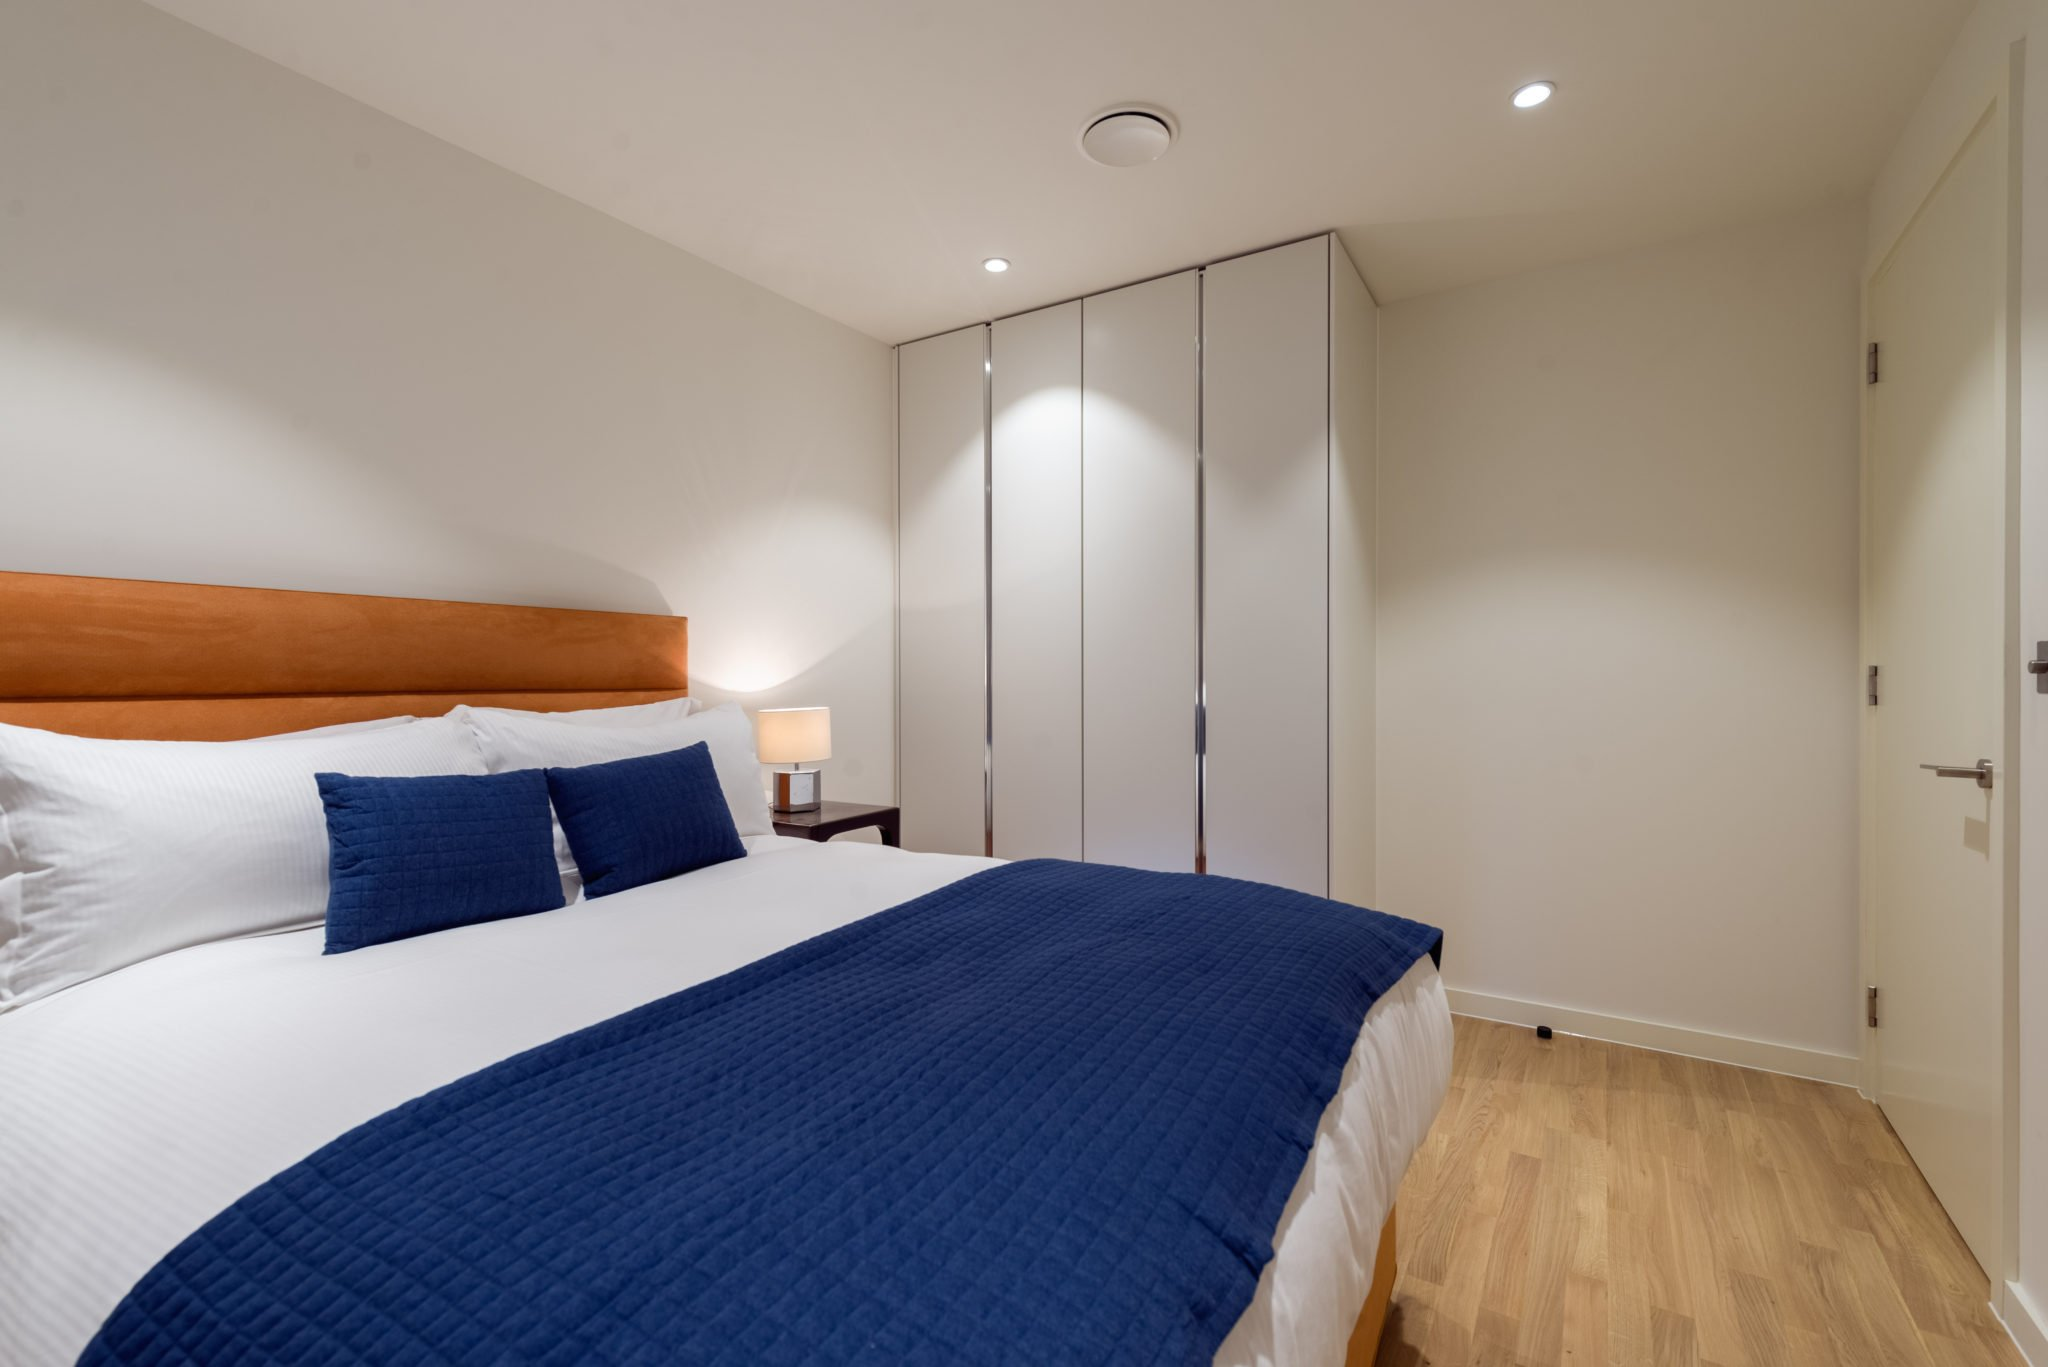 Are-you-looking-for-affordable-accommodation-near-Holborn?-why-not-book-our-Chancery-Lane-Apartments-Star-Yard-London-today-with-Urban-Stay-for-great-rates.